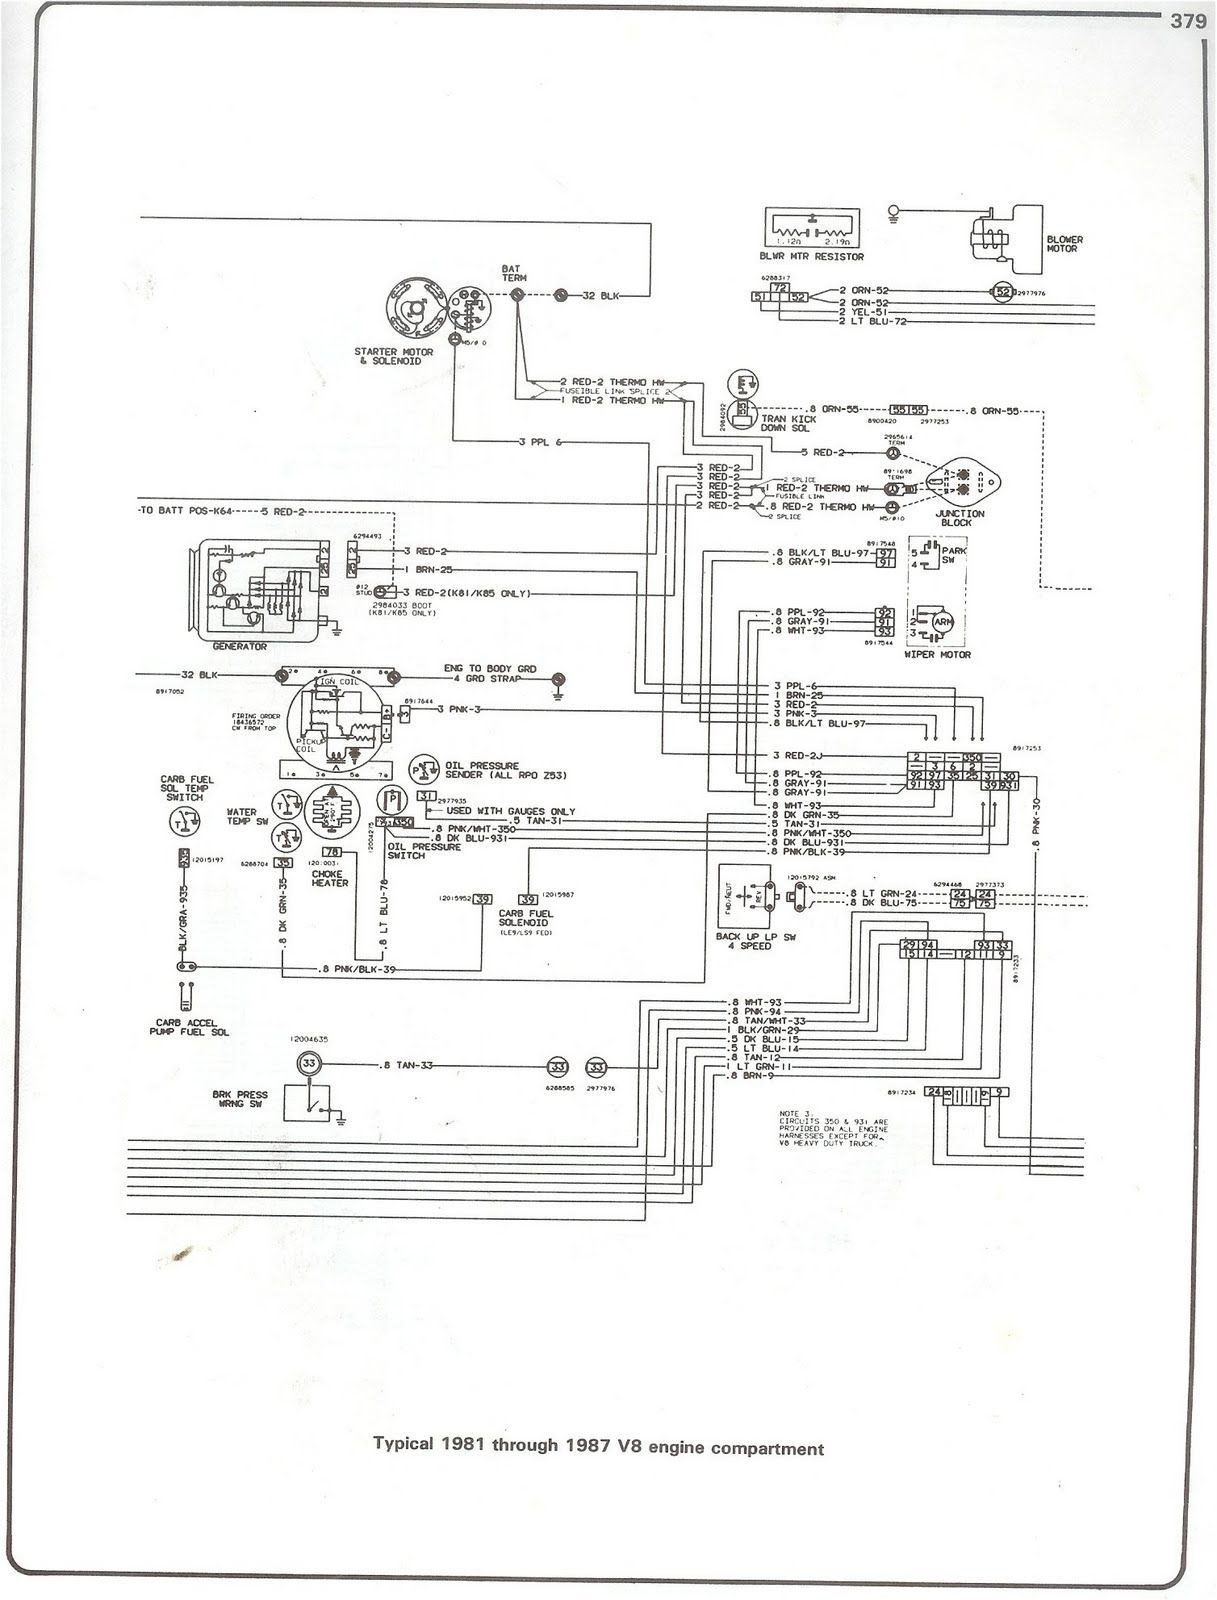 1987 Ford Ranger Radio Wiring Diagram | schematic and wiring diagram in  2020 | Chevy trucks, 1979 chevy truck, Truck enginePinterest